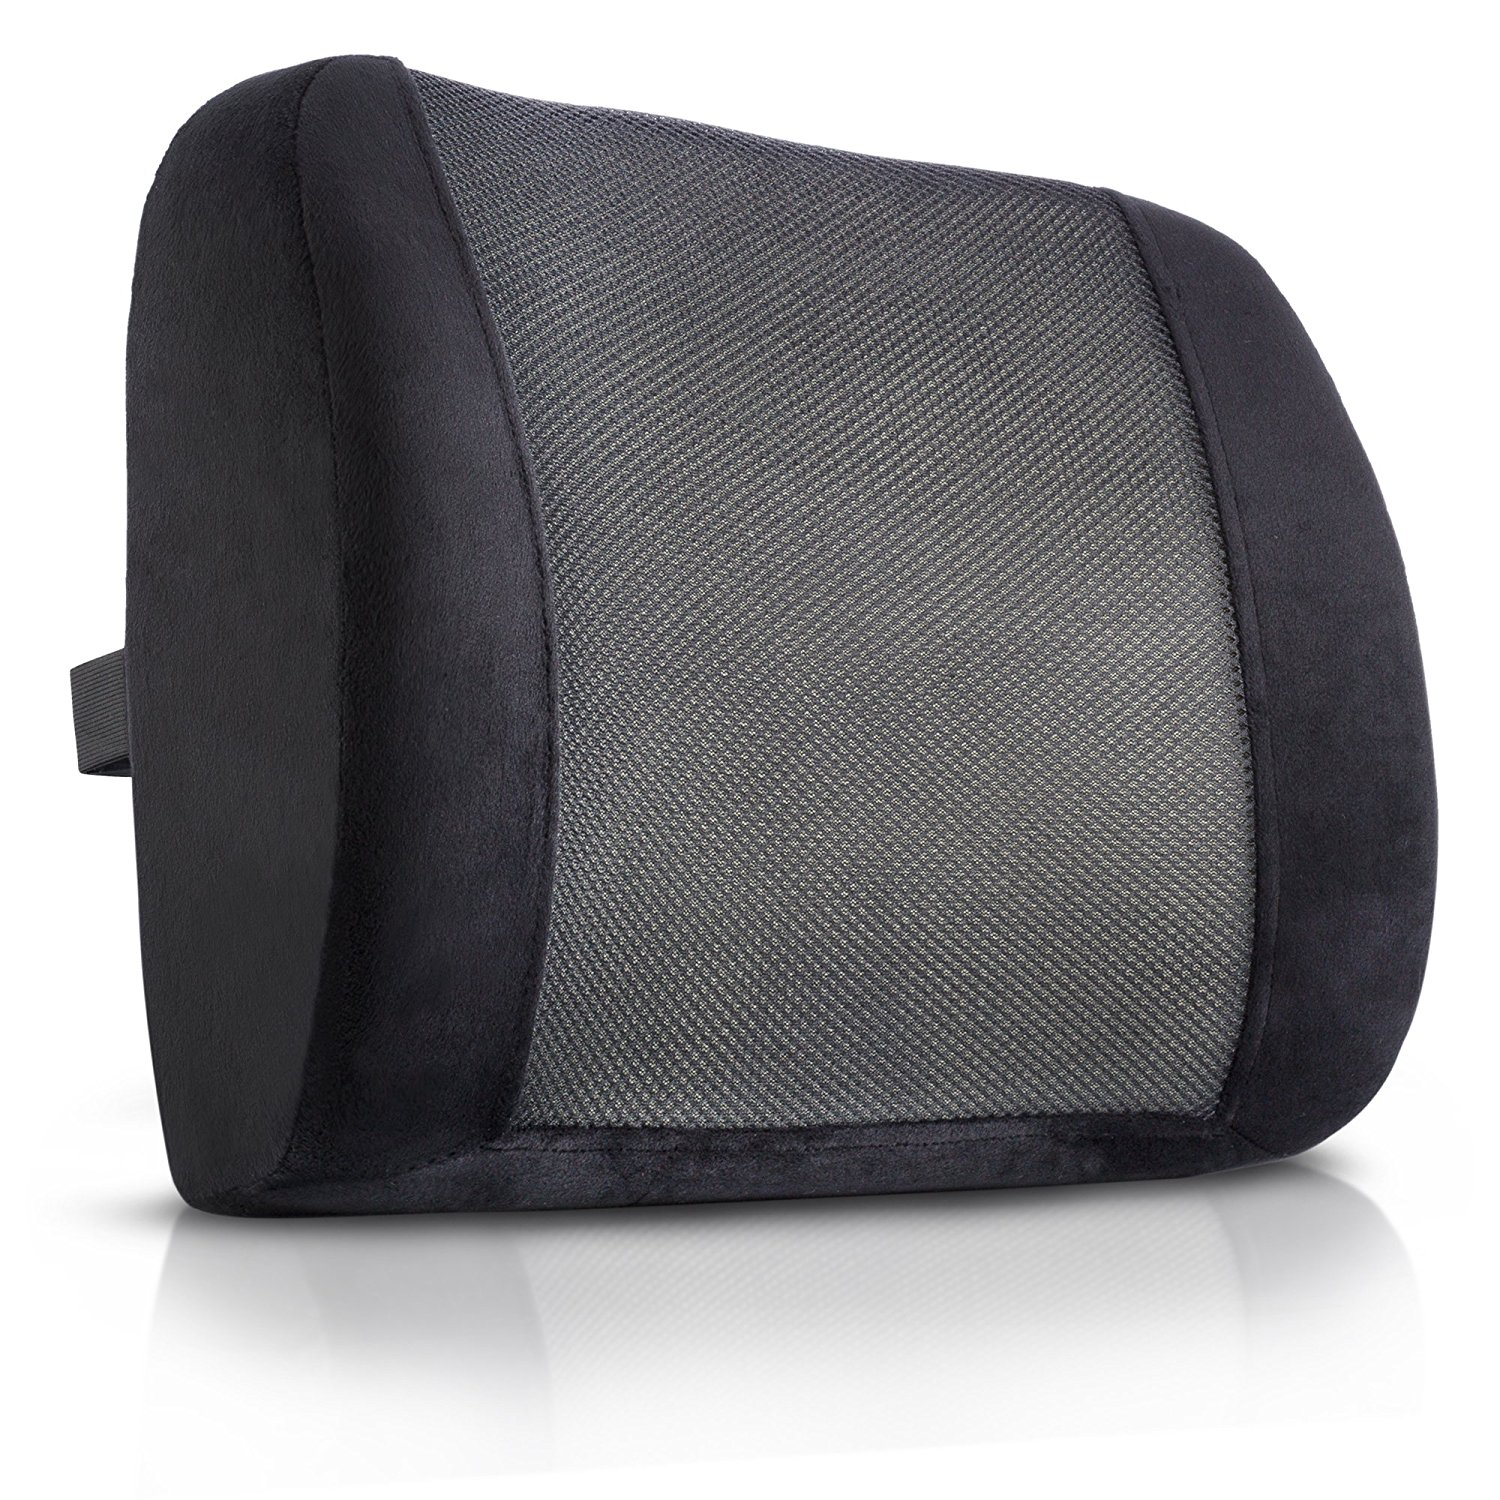 lumbar support for car - Kings Comfort Lumbar Support Pillow